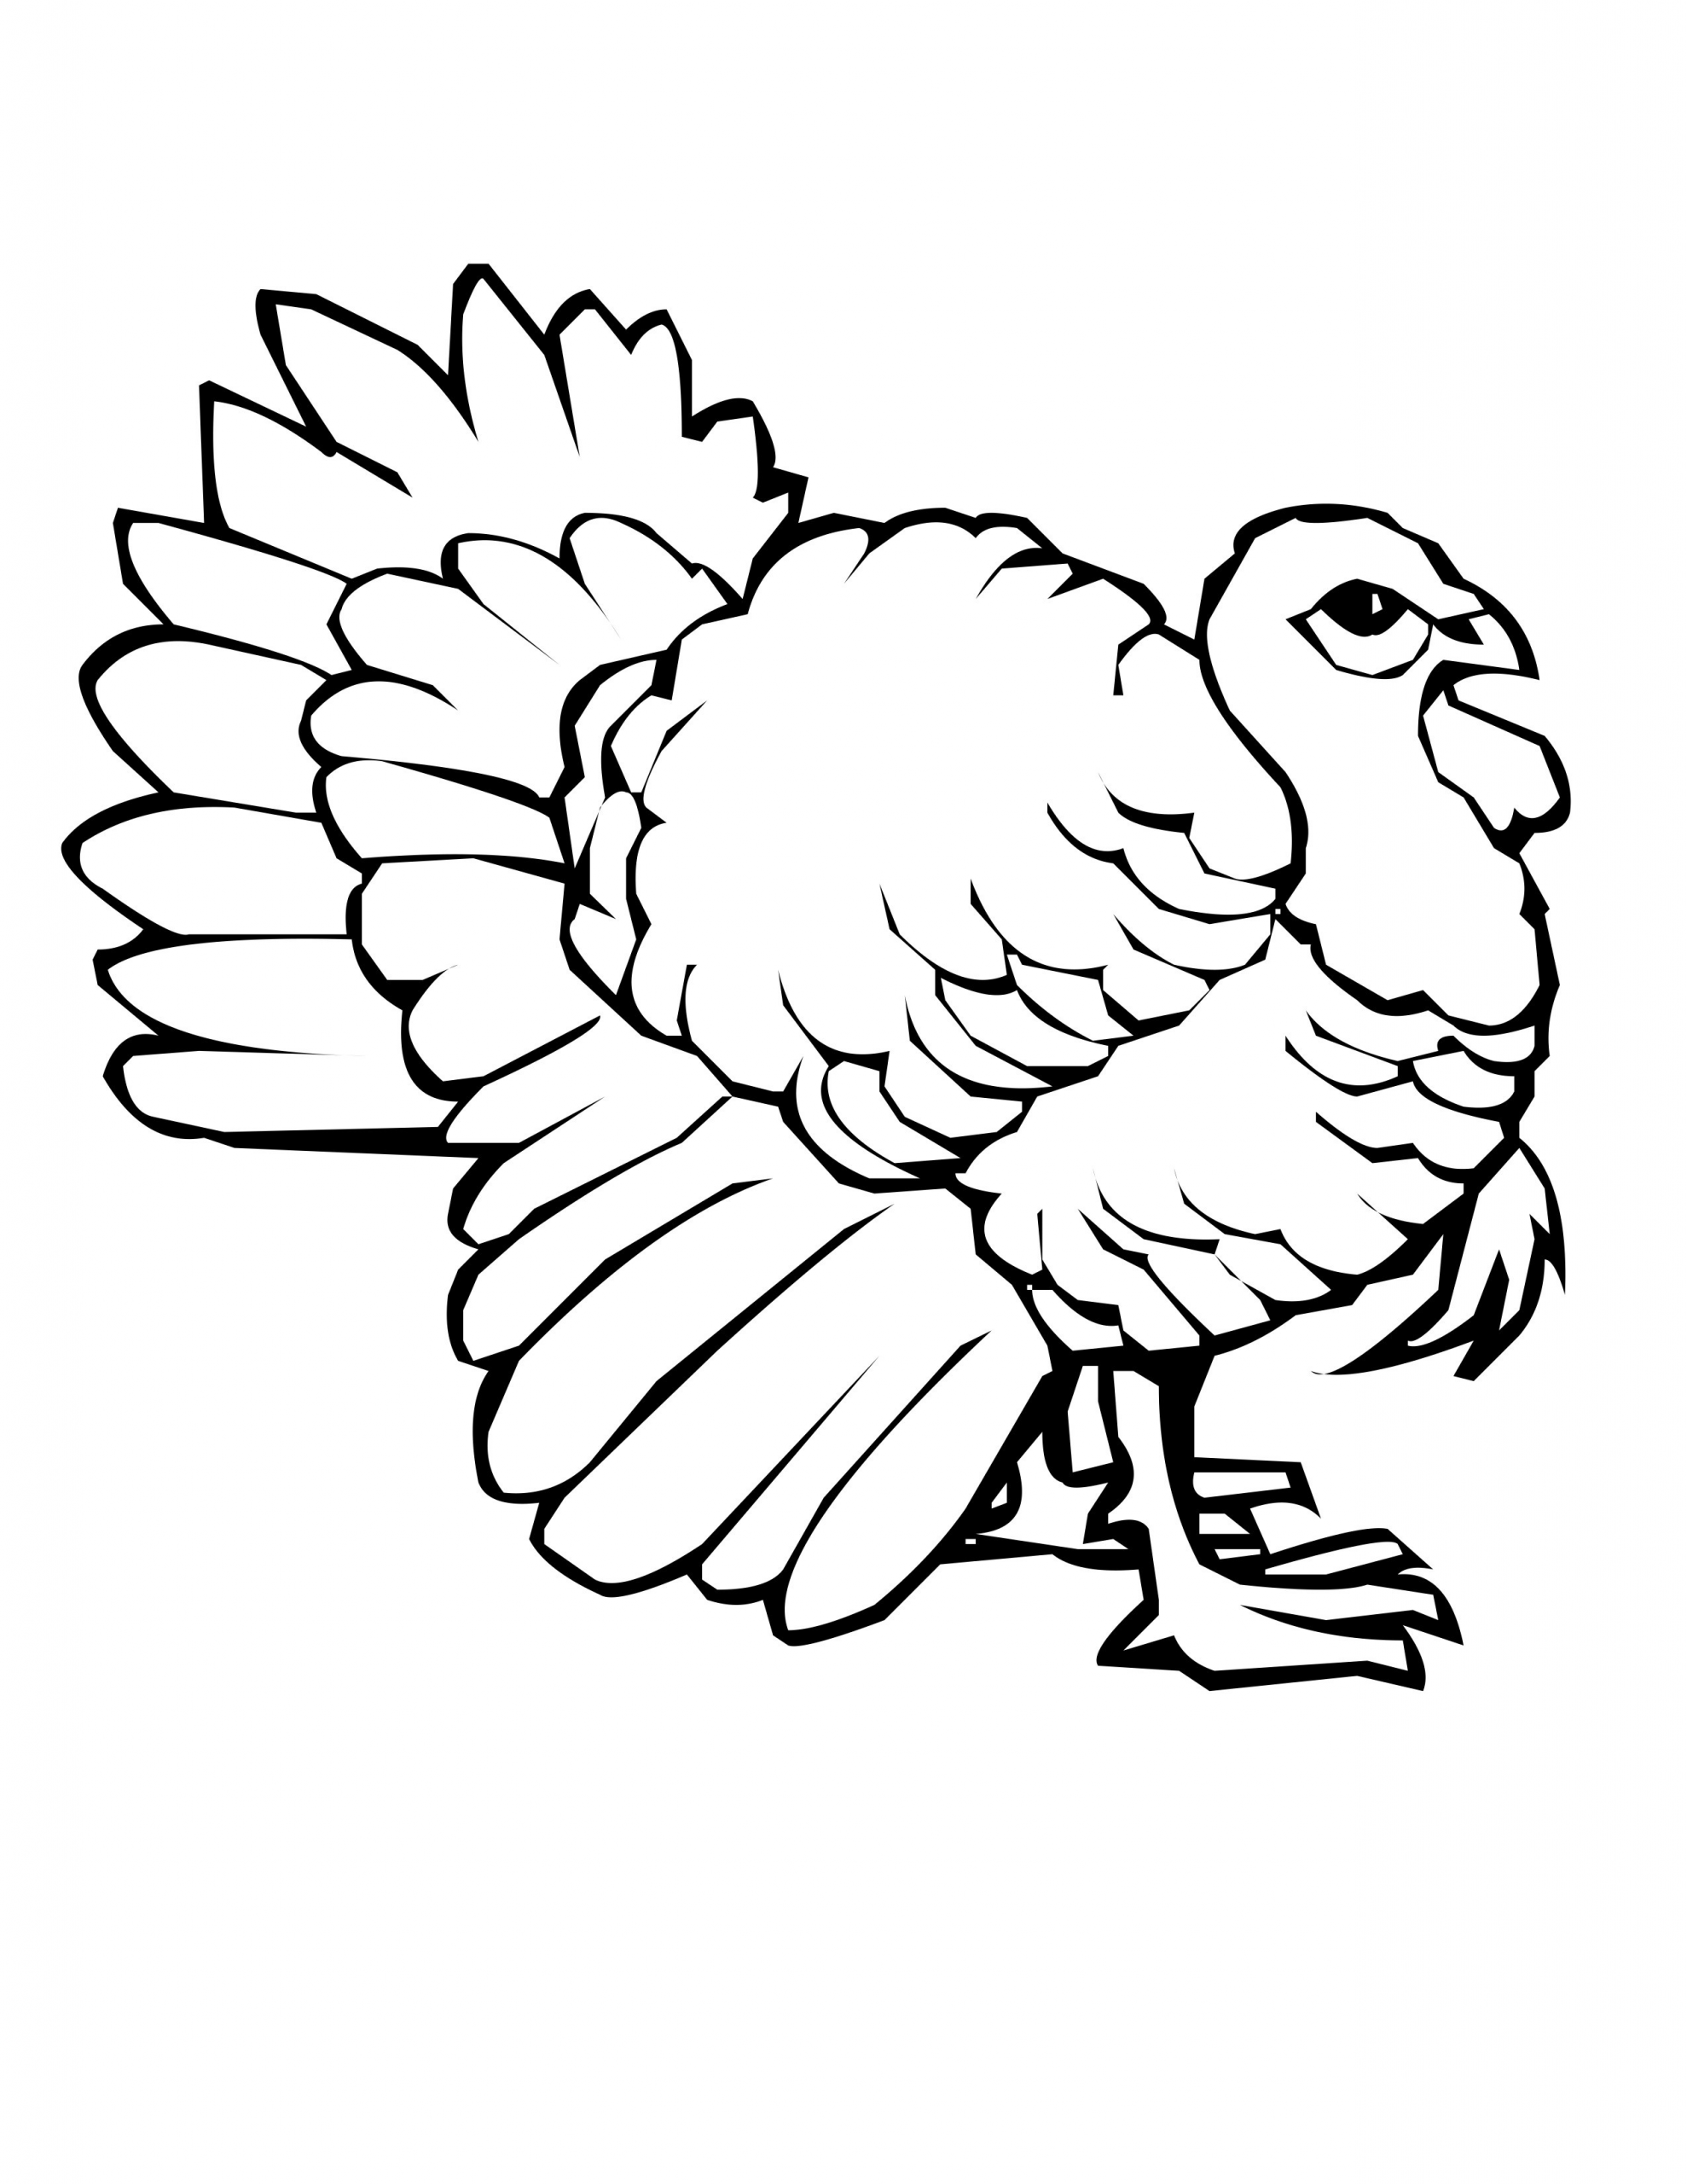 Feather Coloring Page Sketch Coloring Page | Feather illustration ... | 2560x1978